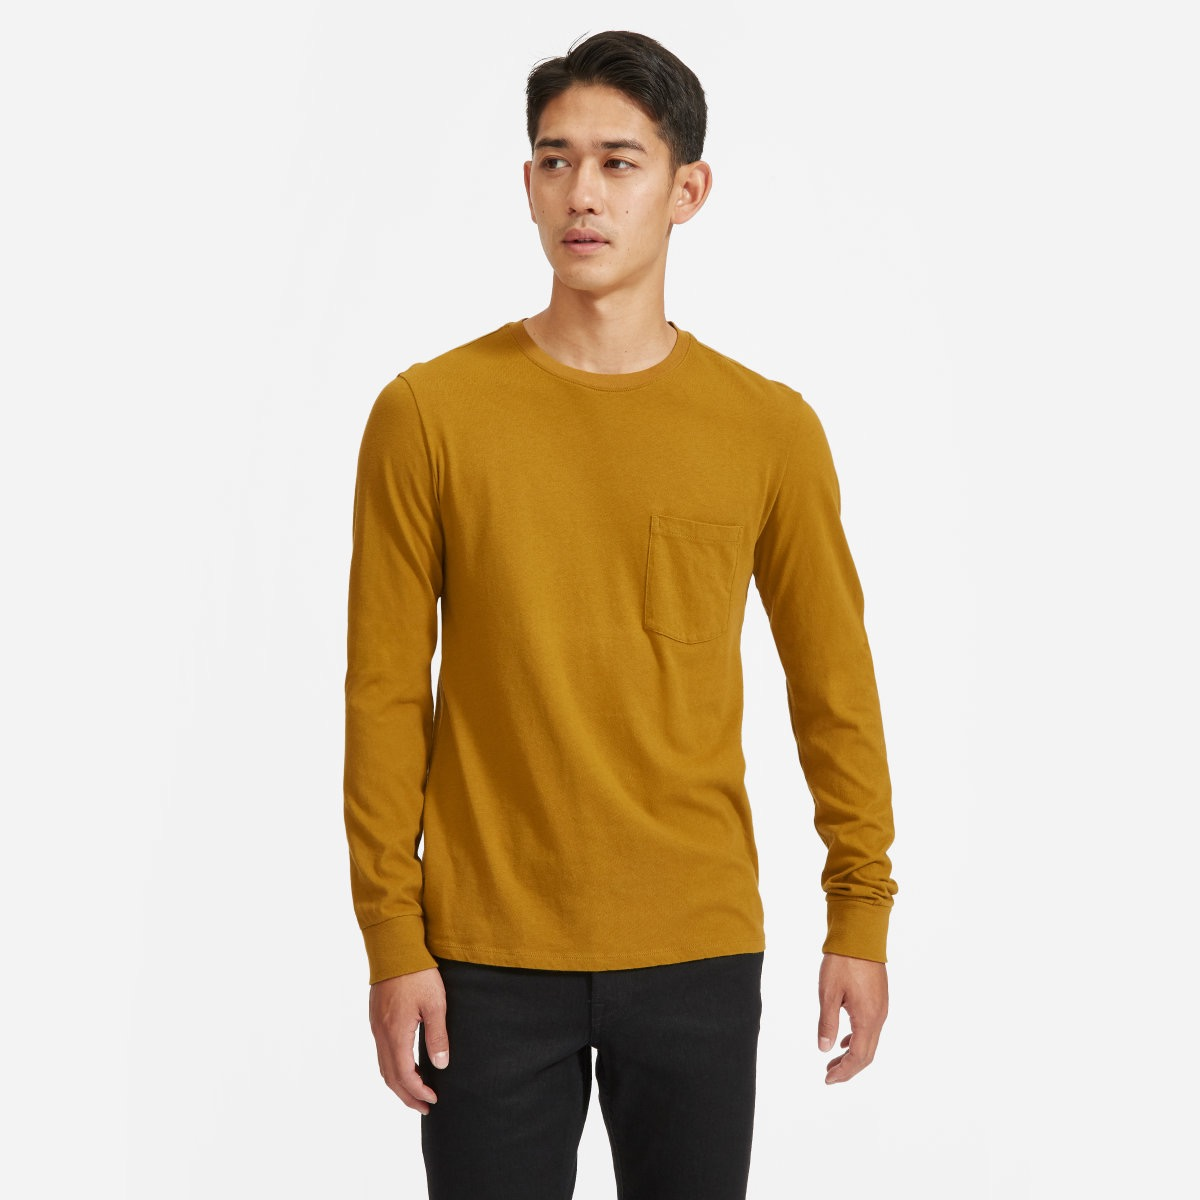 young asian man in yellow long sleeved tee and black pants